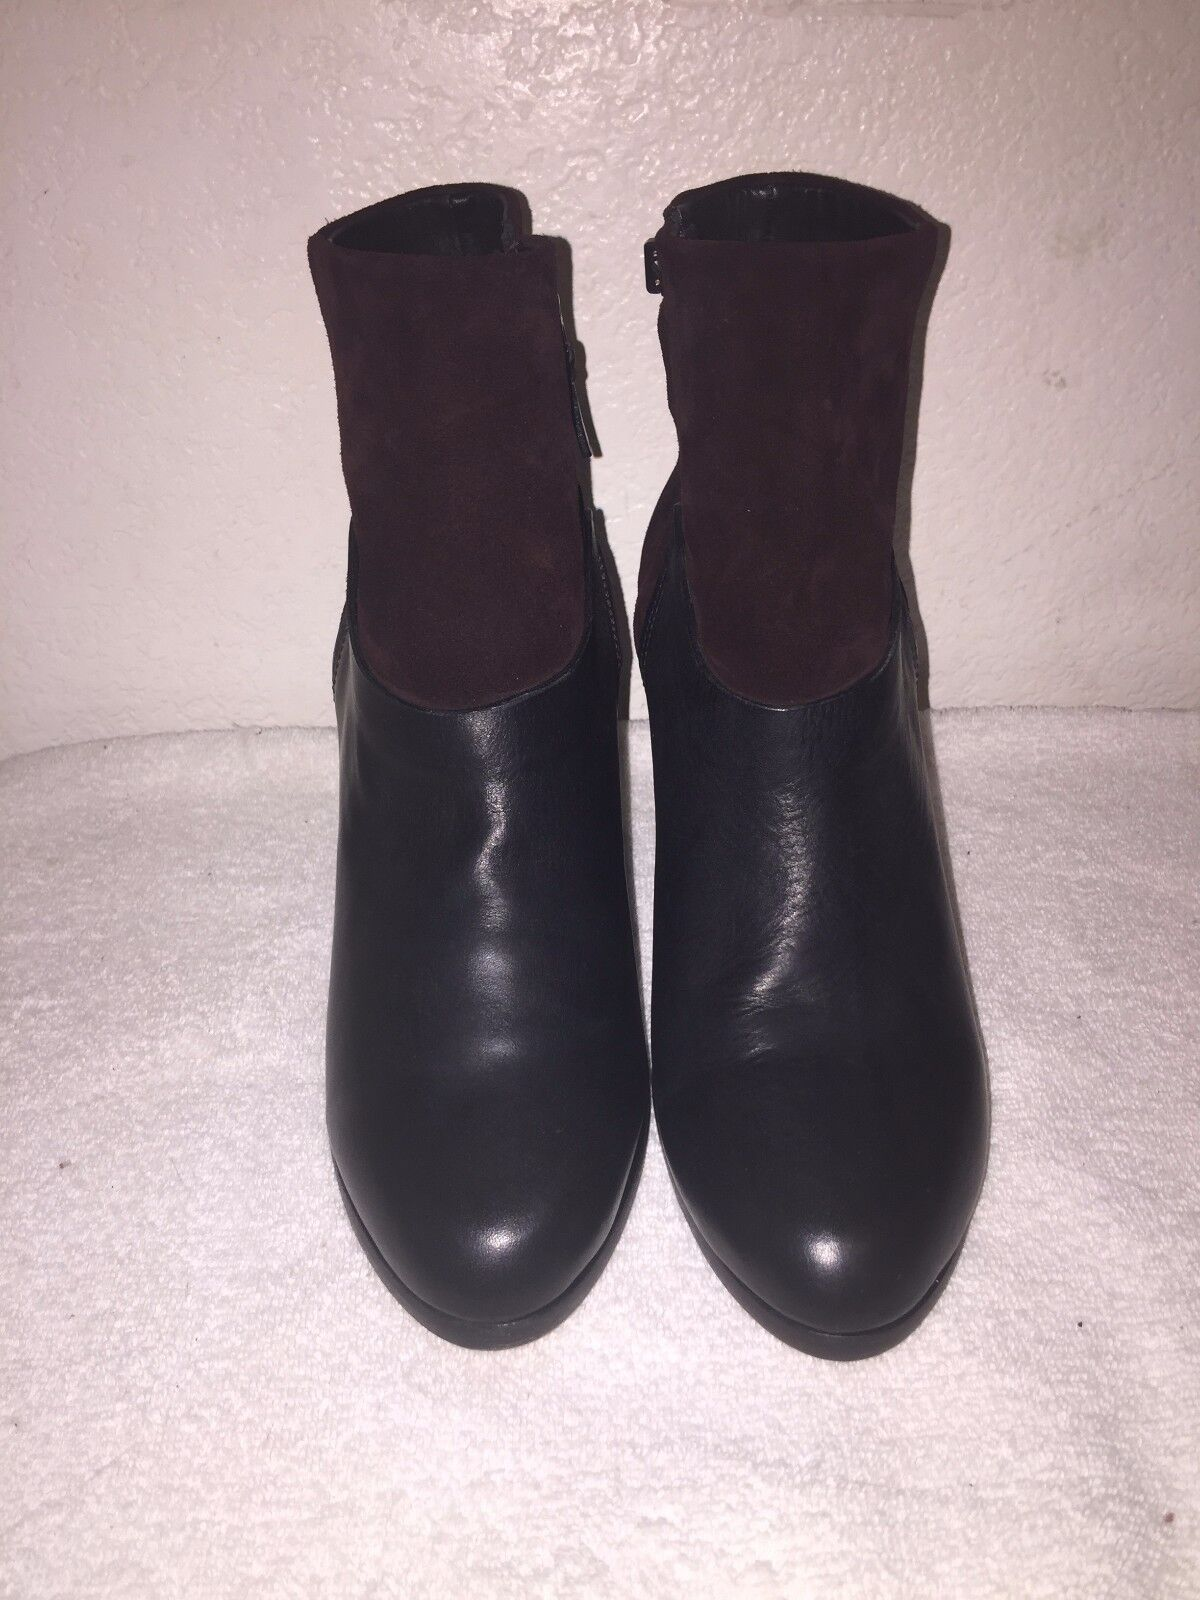 Rag & Bone Kendall Leather and Suede Ankle Booties Black and Brown Size 40